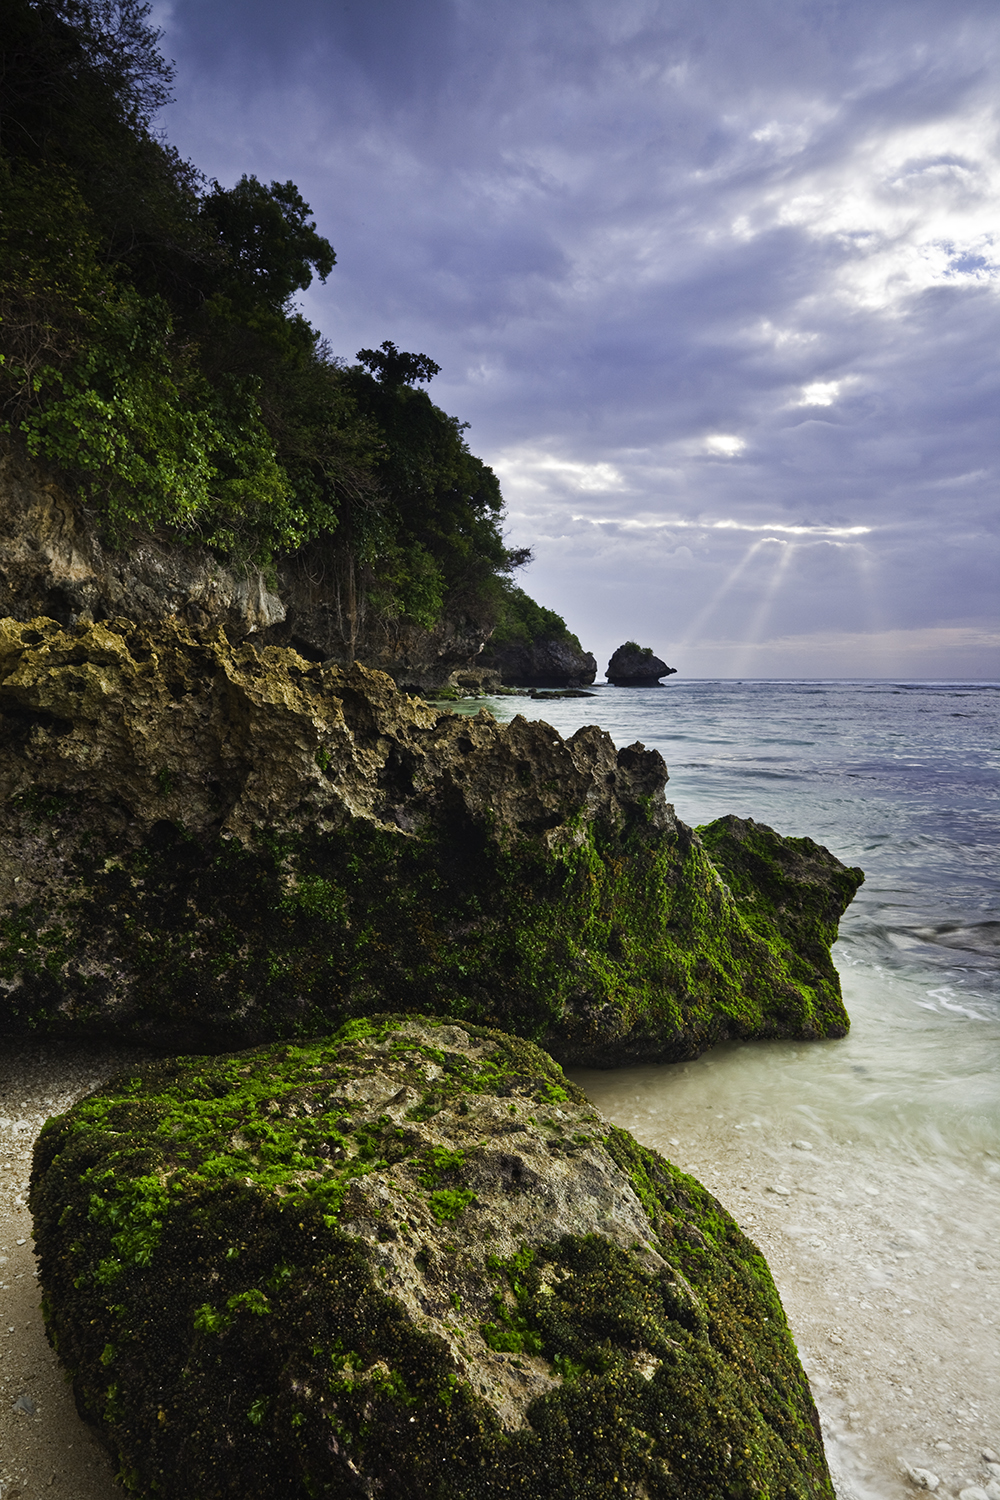 nature_Bali_rock_ocean_sunset_ray_8018.jpg